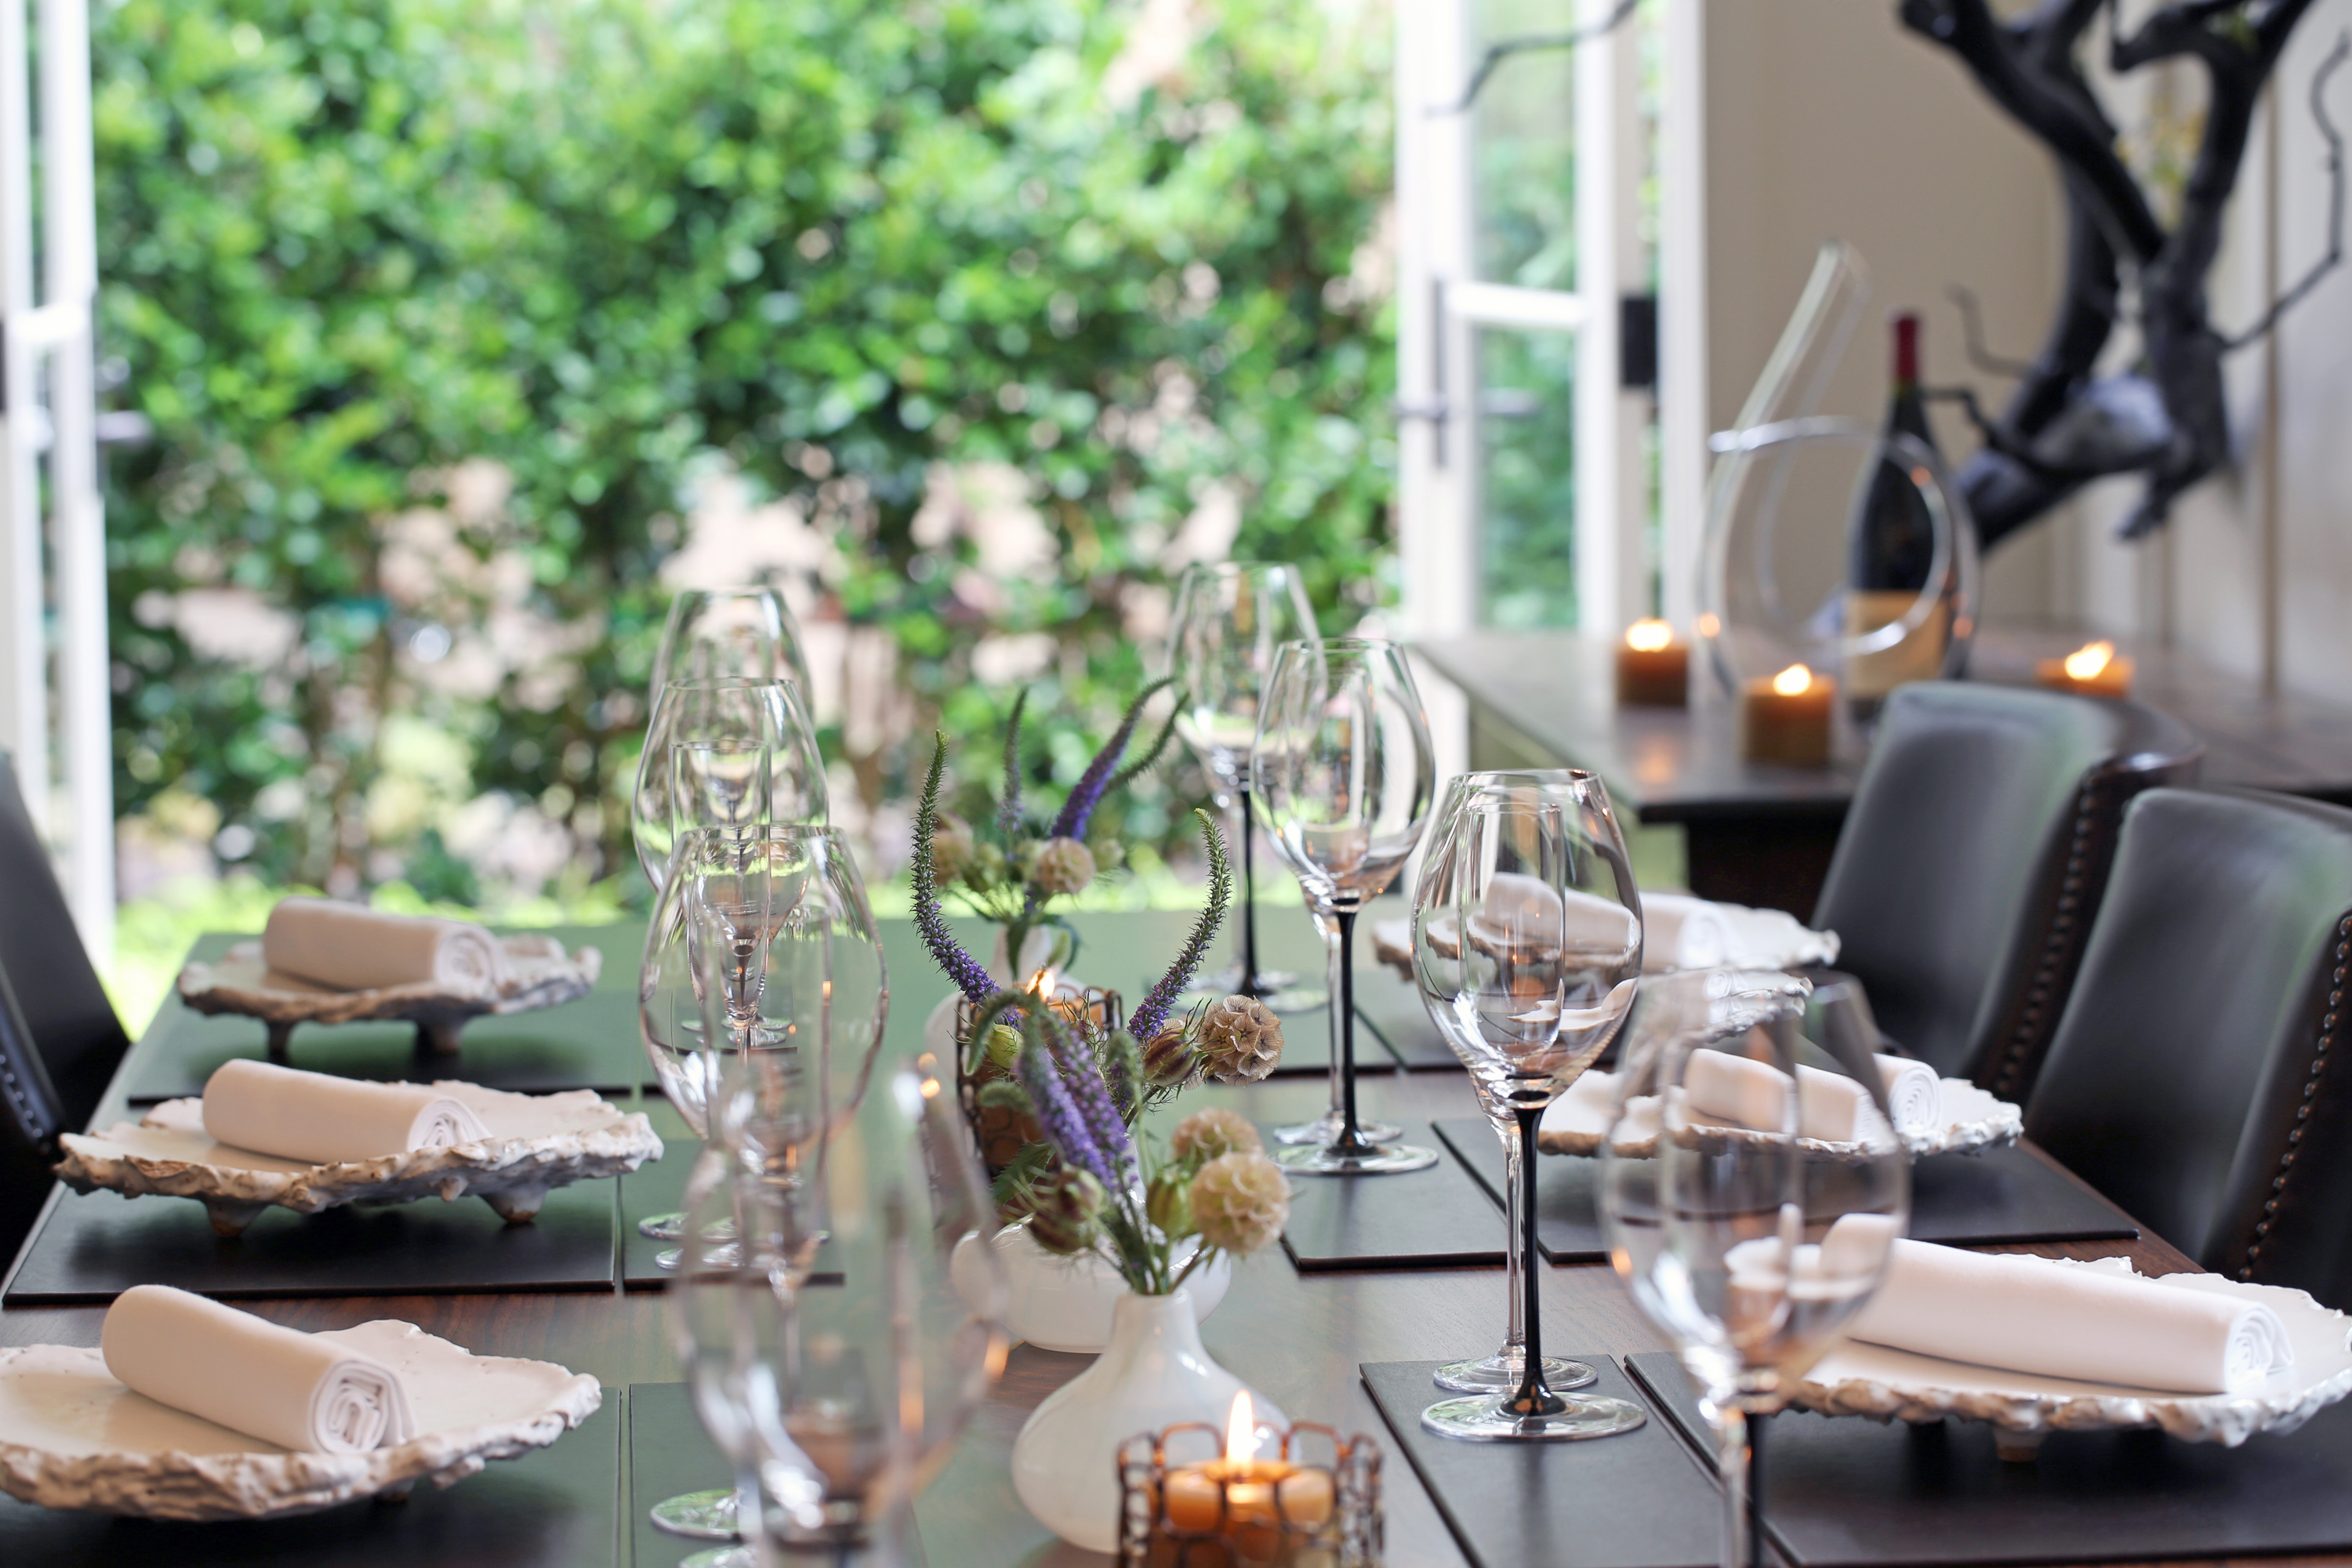 Private dining at Meadowood Restaurant